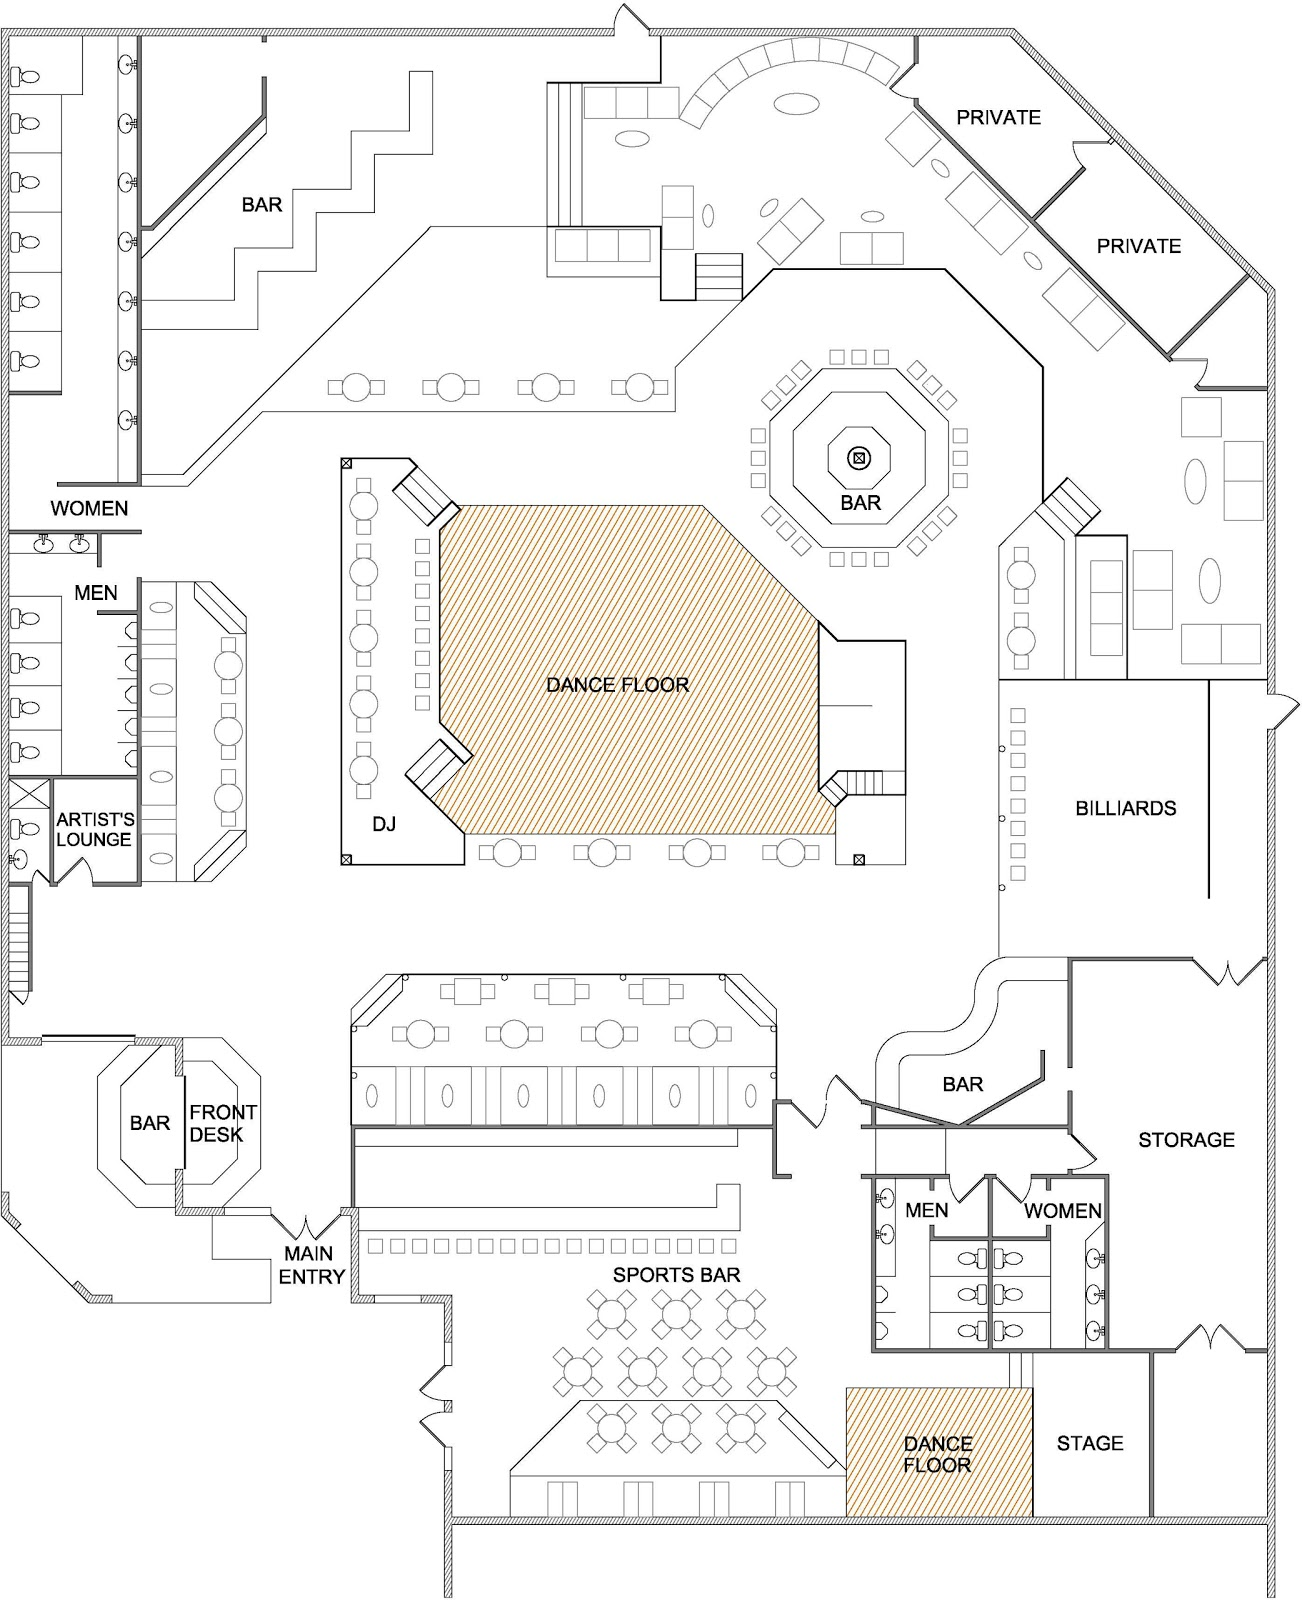 Nightclub Floor Plan Design Joy Studio Design Gallery